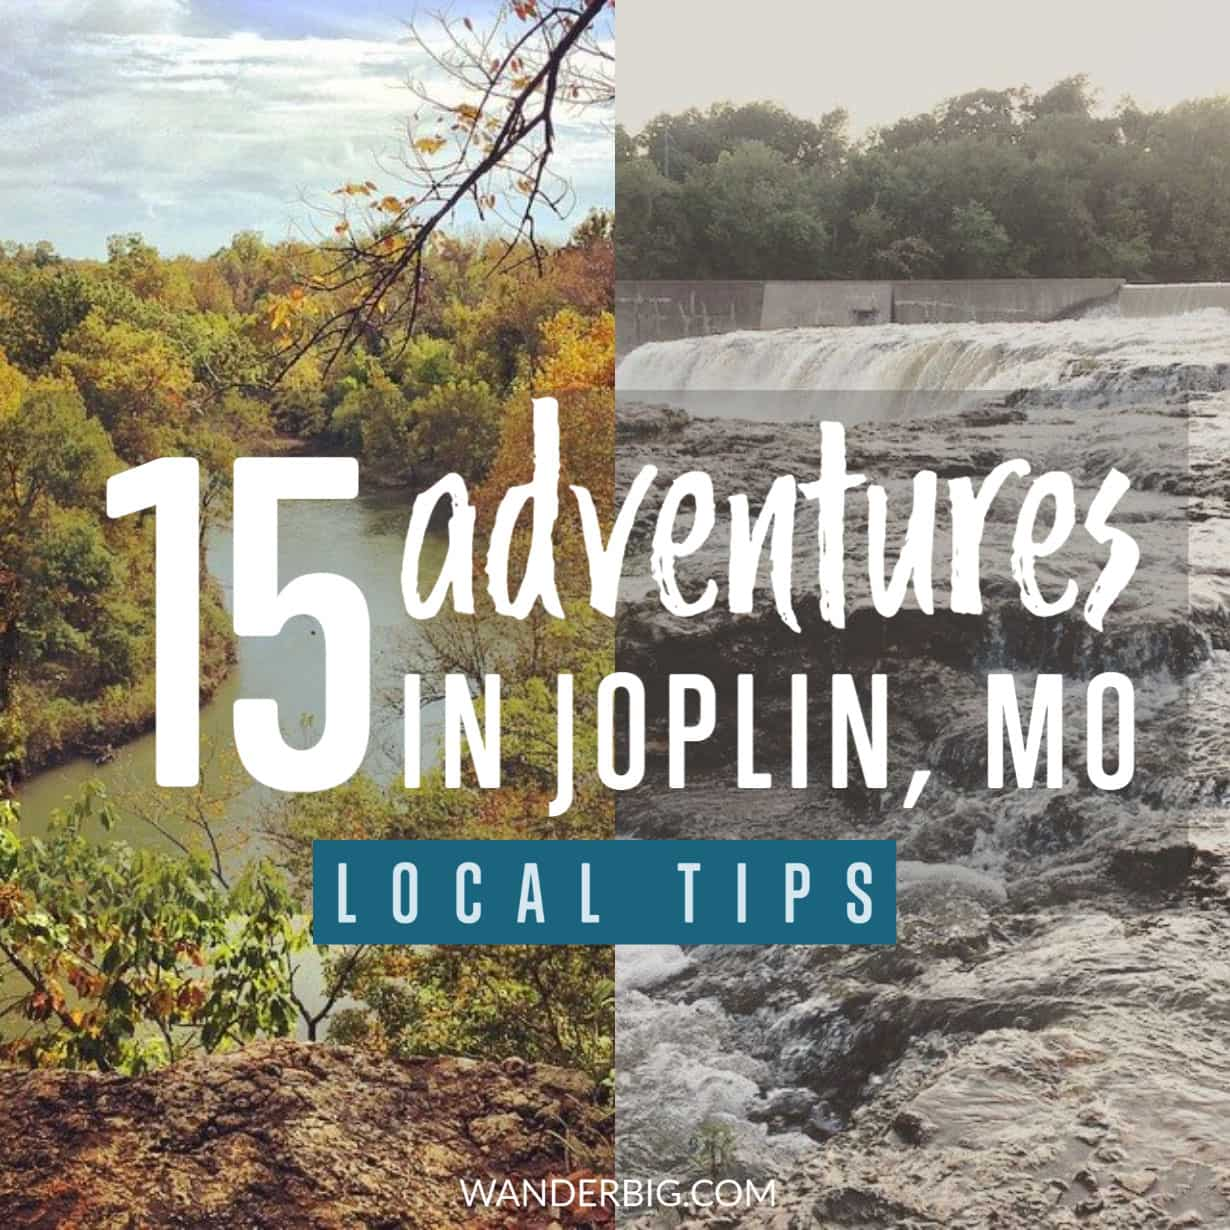 15 things to do in joplin, mo- an itinerary for visitors and tourists